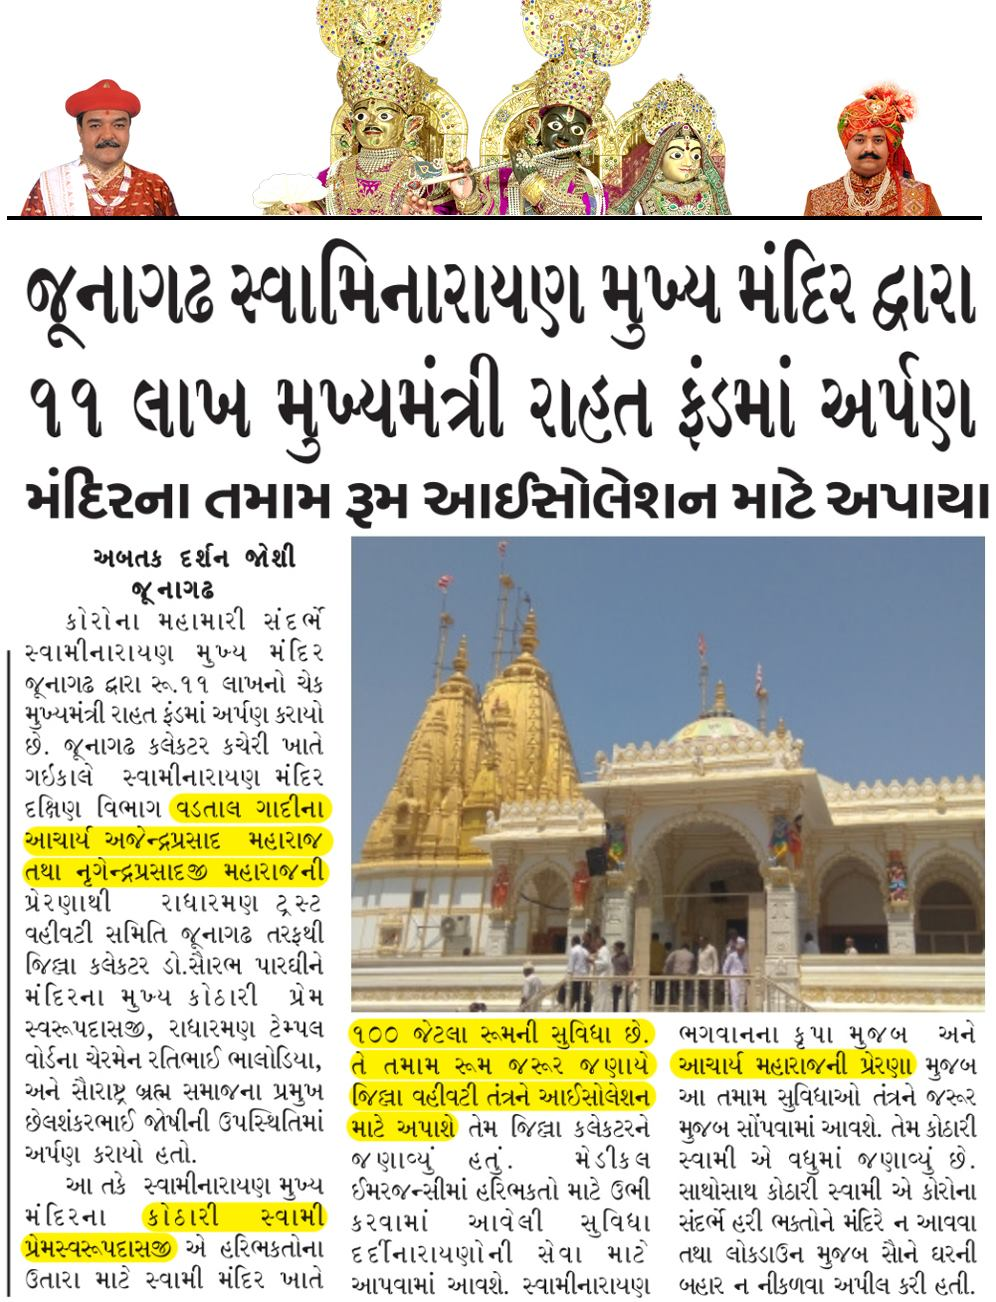 Swaminarayan Mandir Junagadh has contributed Rs. 11 lakh in the Chief Minister Relief Fund. for Covid 19 relief work was deposited 1